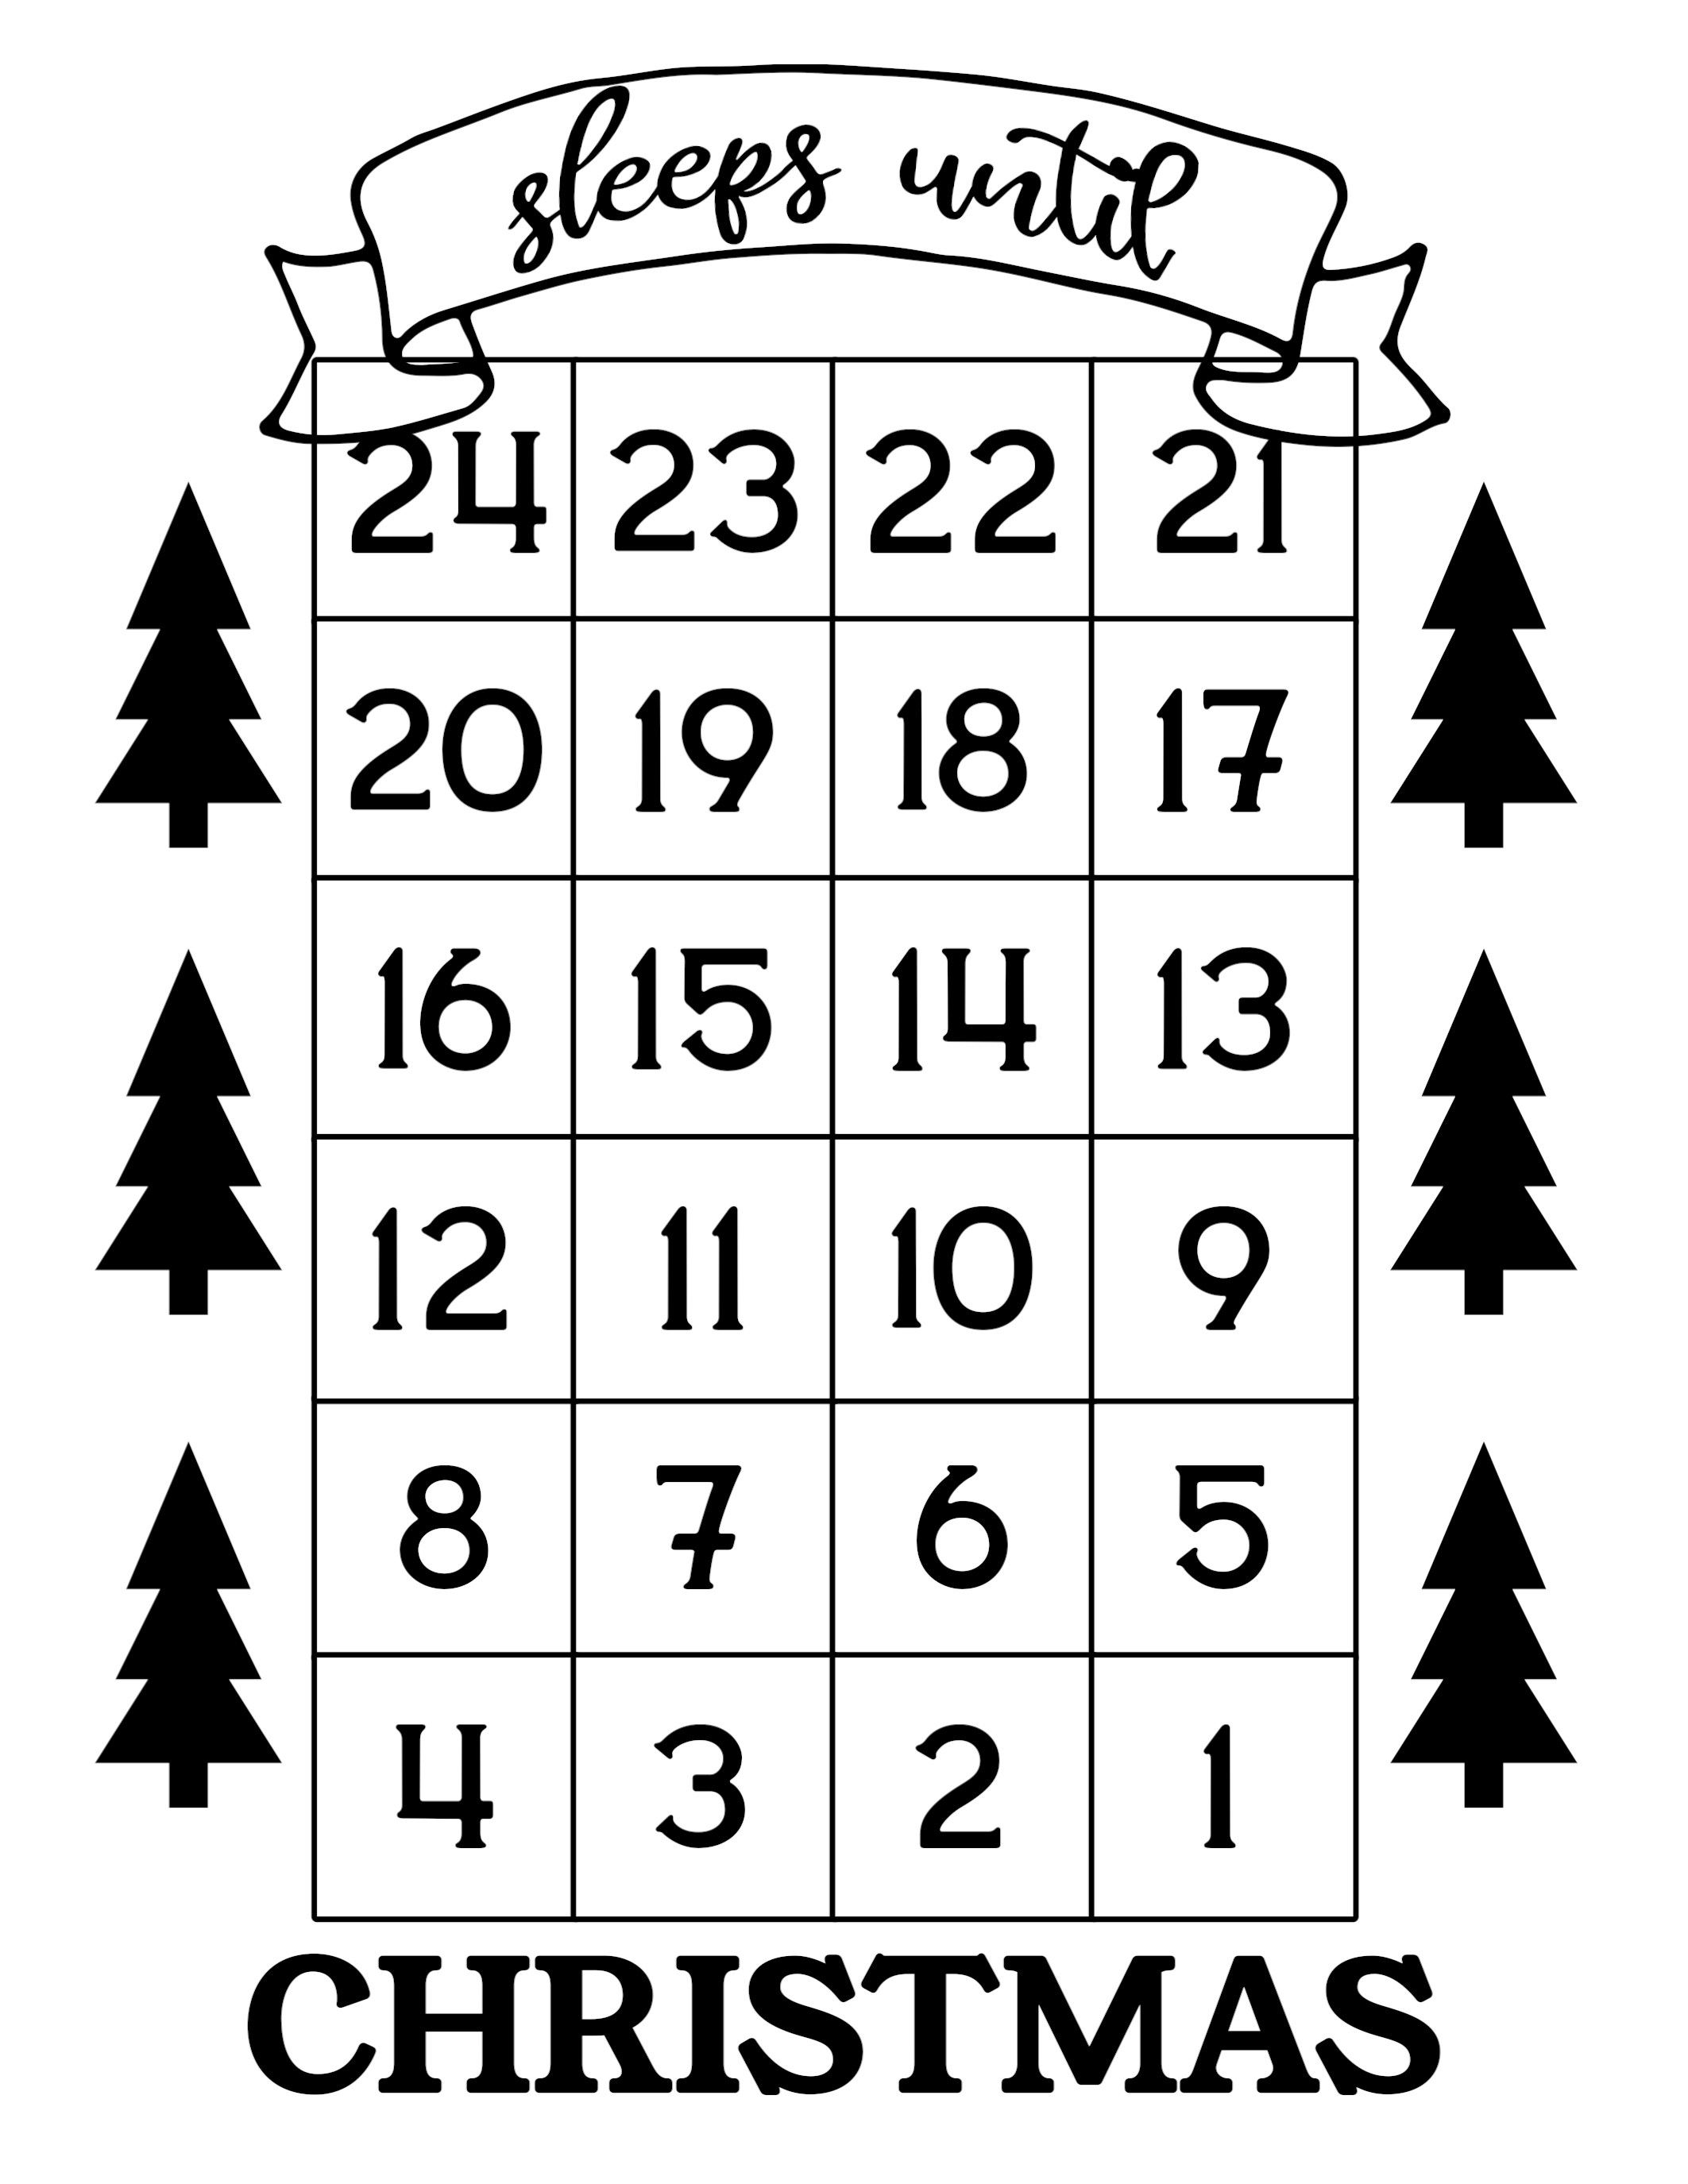 How Many Days Until Christmas Free Printable - Paper Trail